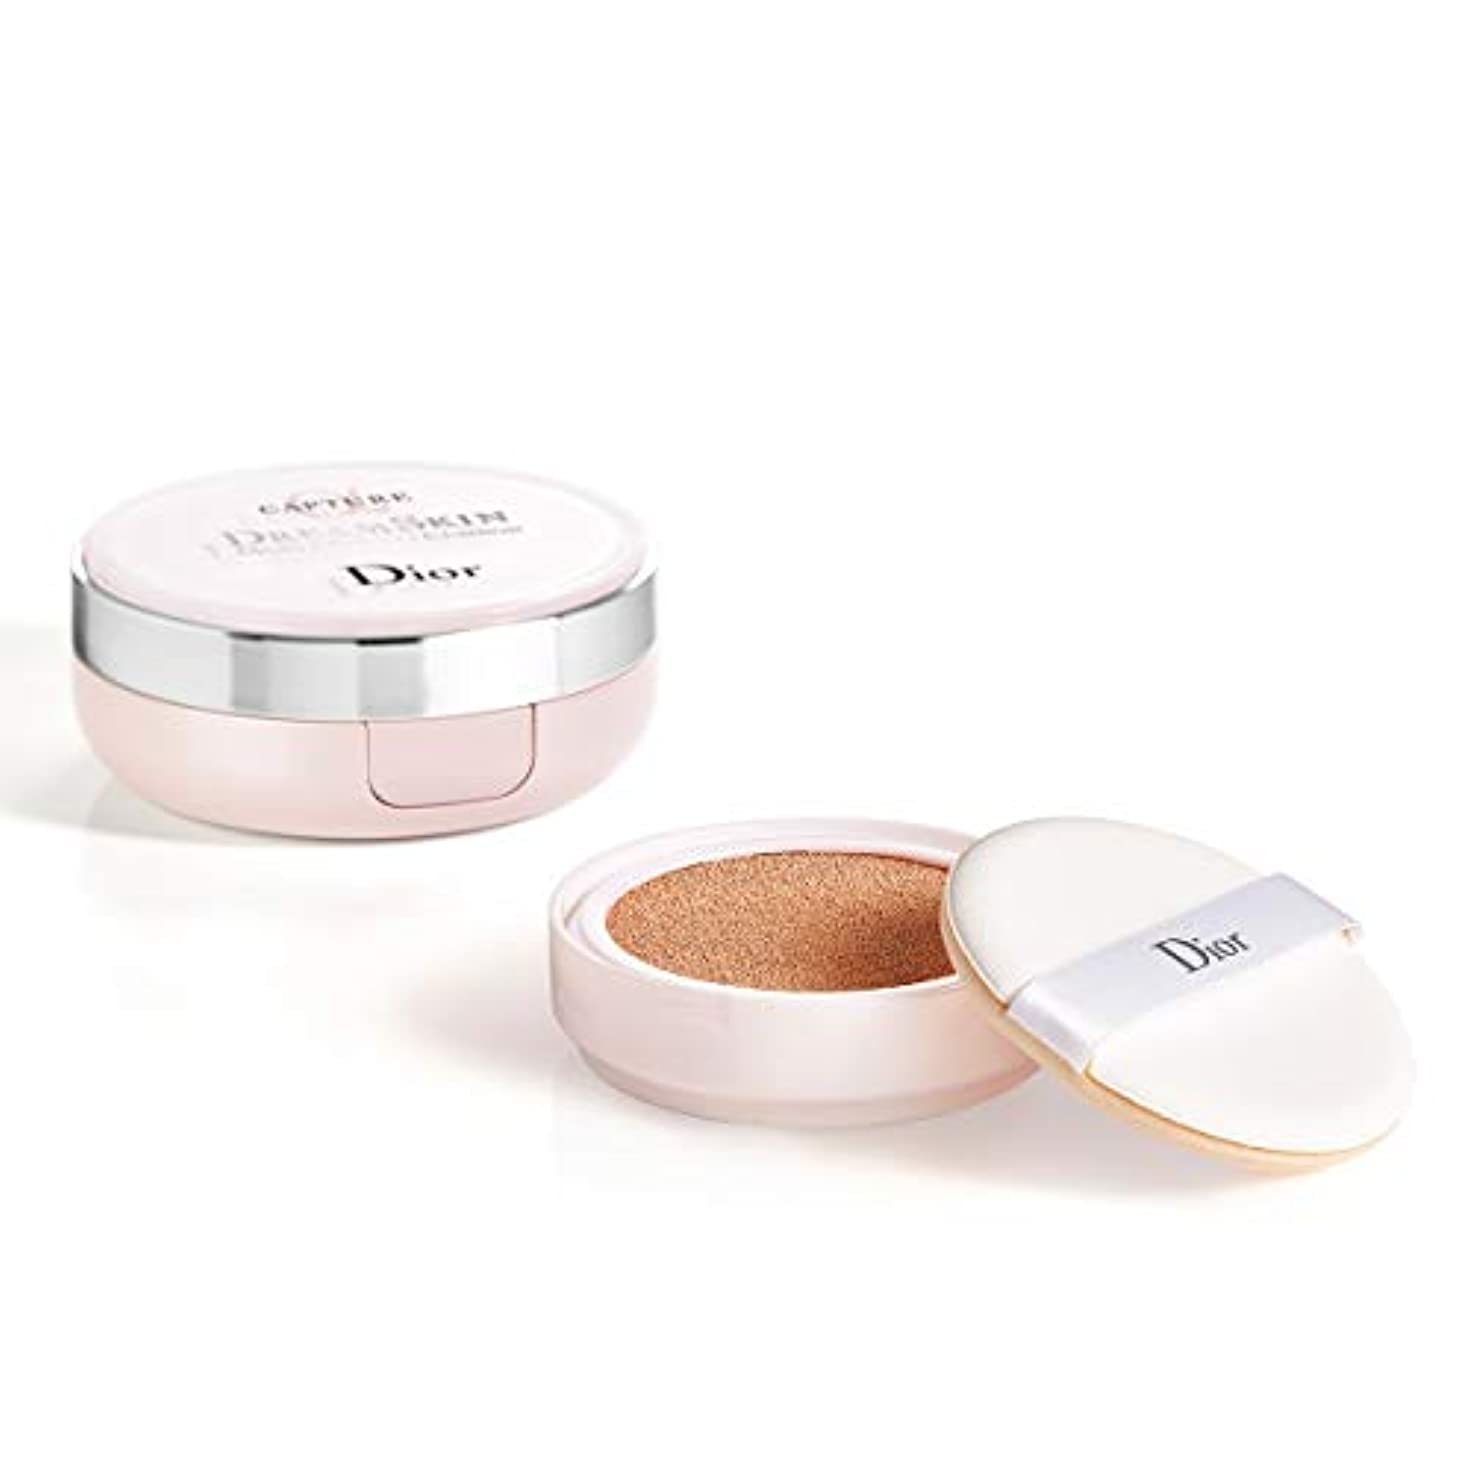 範囲散らすトラクタークリスチャンディオール Capture Dreamskin Moist & Perfect Cushion SPF 50 With Extra Refill - # 025 (Soft Beige) 2x15g/0.5oz...